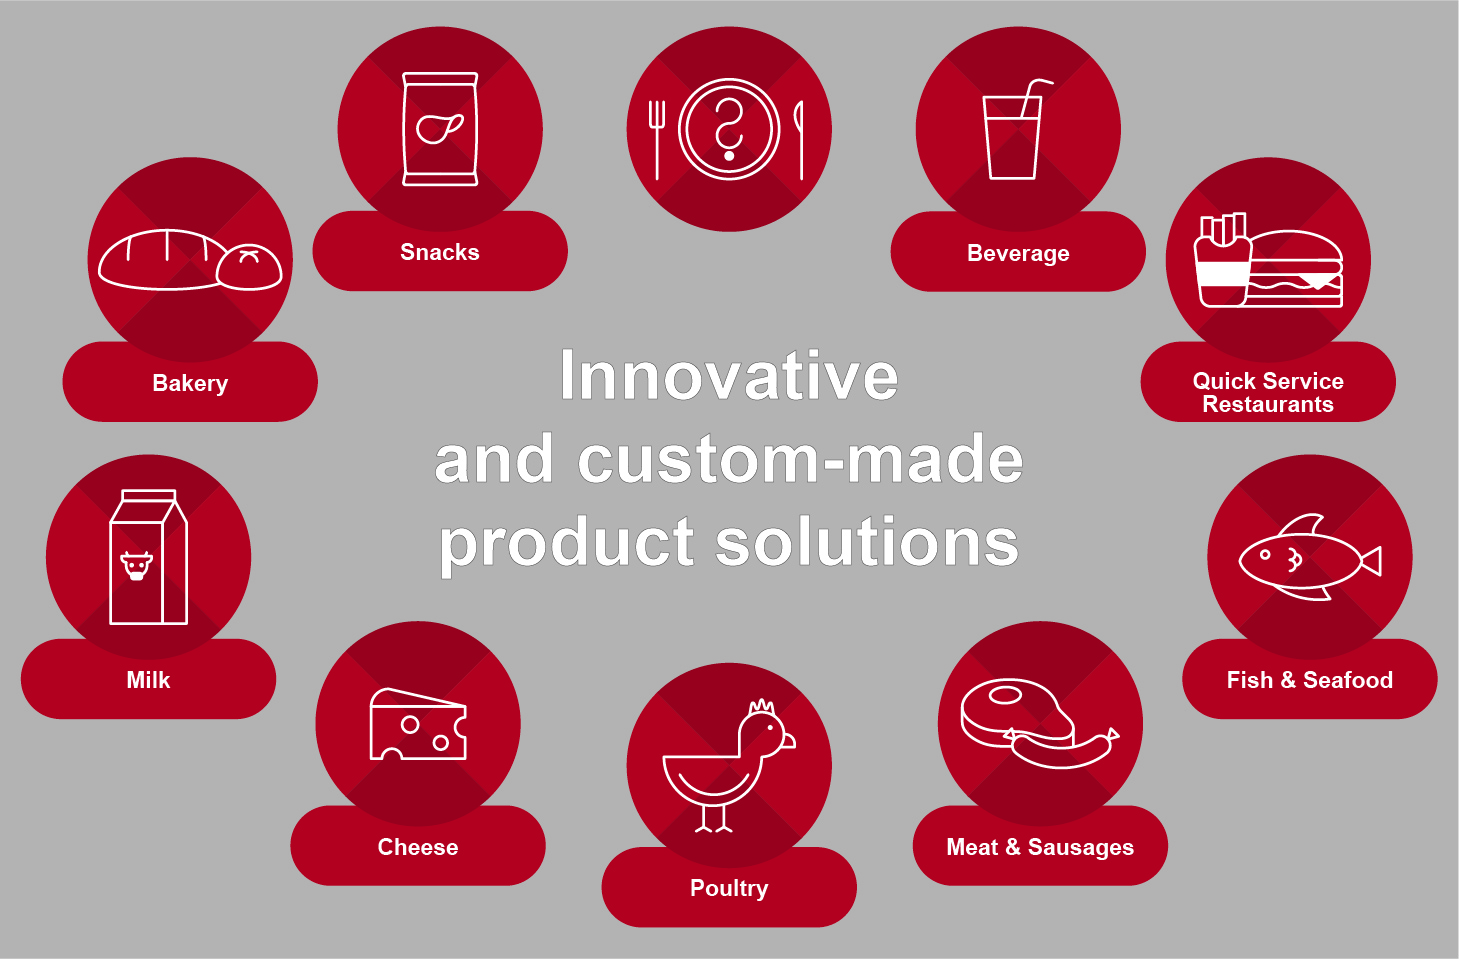 We are happy to support our customers in the industry in optimizing the degree of innovation, efficiency, durability and profit of their product range. Hela blends are customized to meet client´s specific needs in the industries